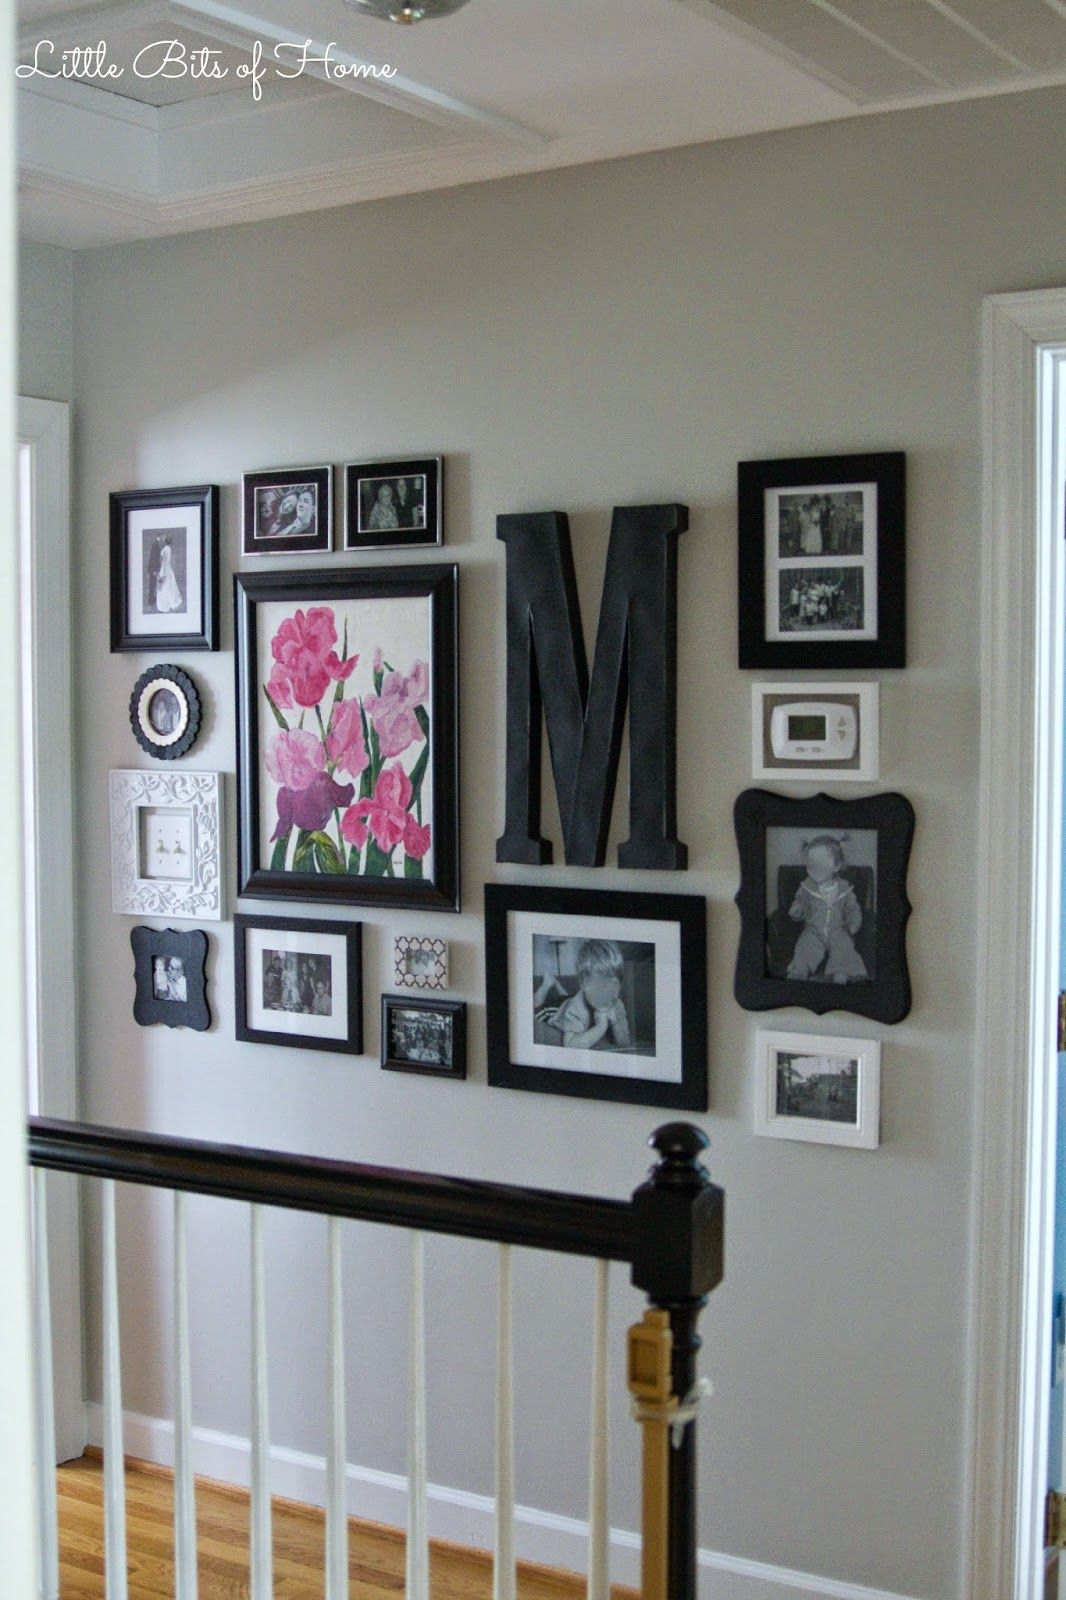 Little bits of home hallway gallery wall gallery walls for Pictures for hallway walls